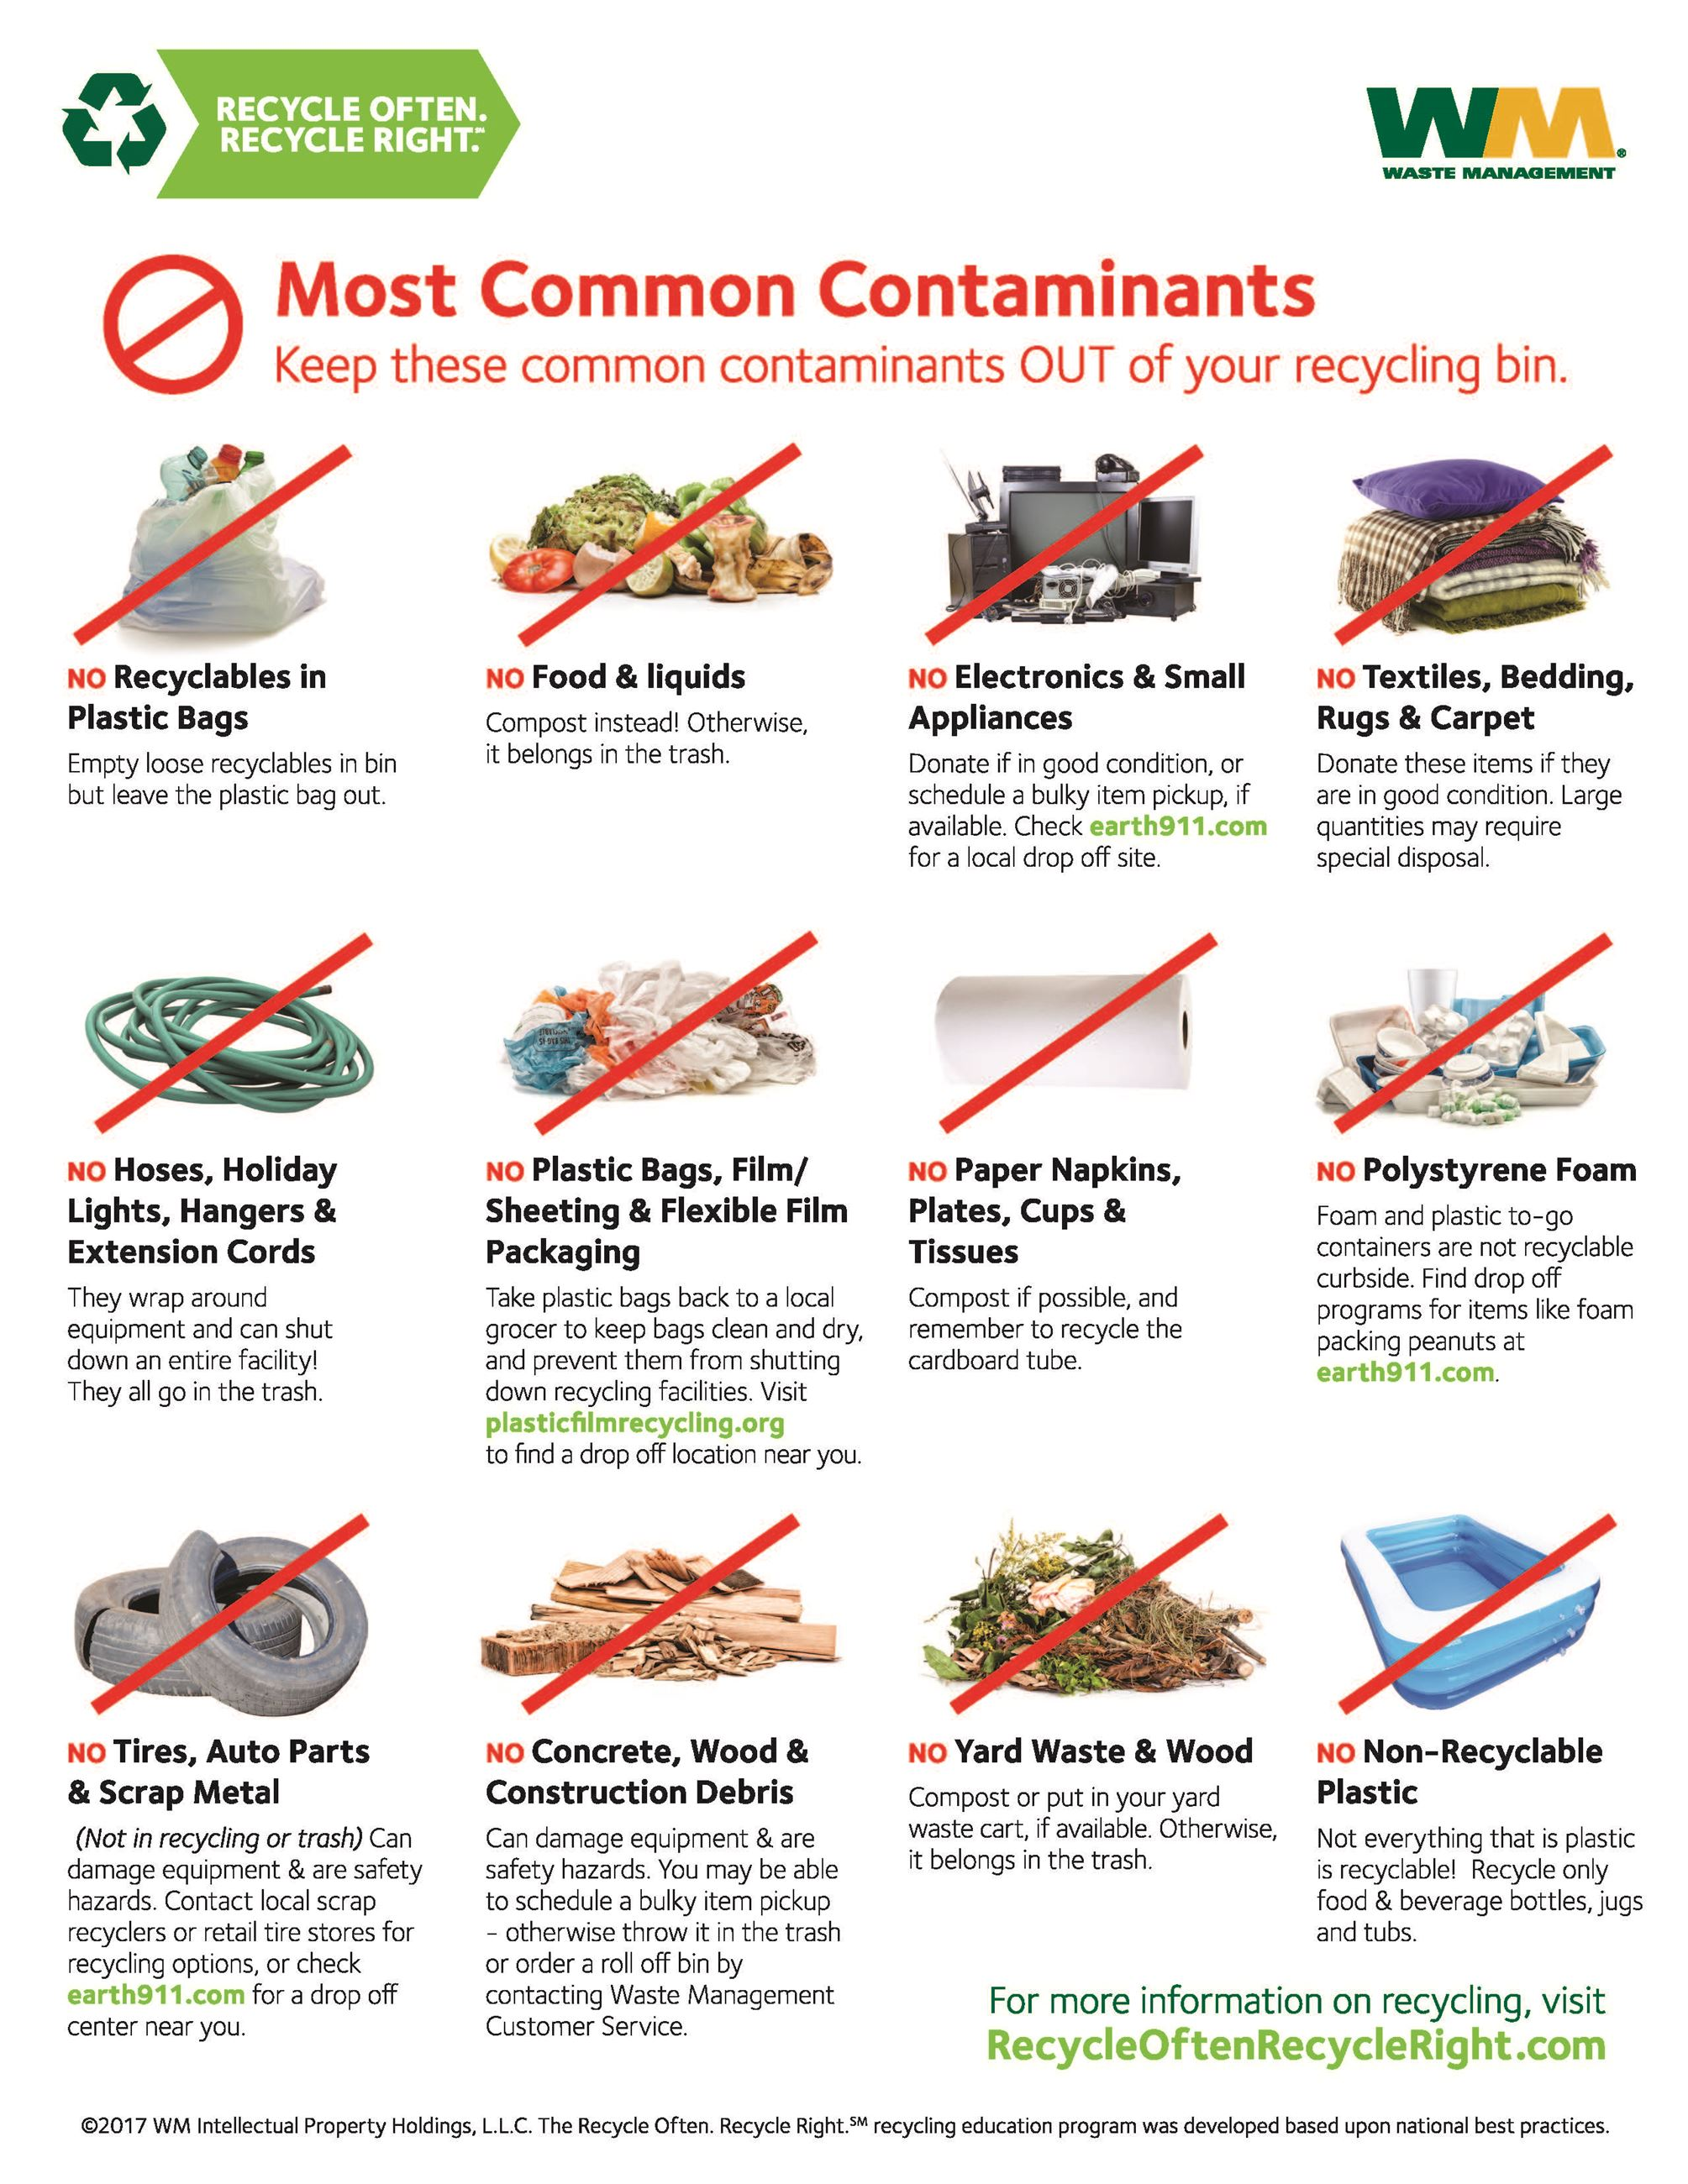 Most-Common-Contaminants-Poster